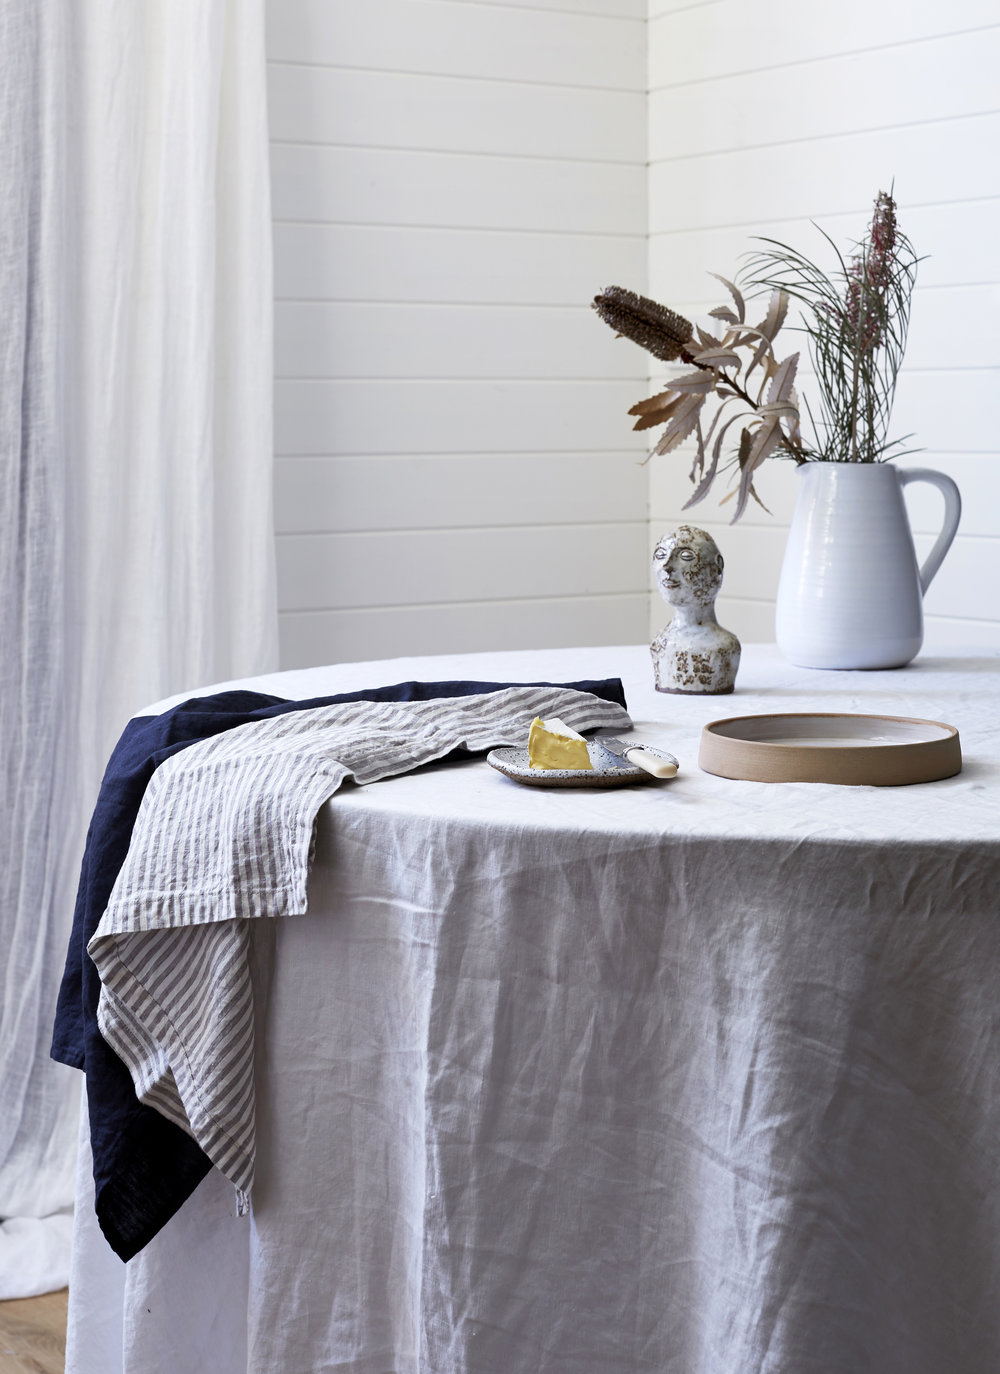 I Love Linen  French Linen table cloth in Milk. French Linen napkins in Stripes and Inky Charcoal. Styling - Kristin Rawson. Photo - Jessie Prince.